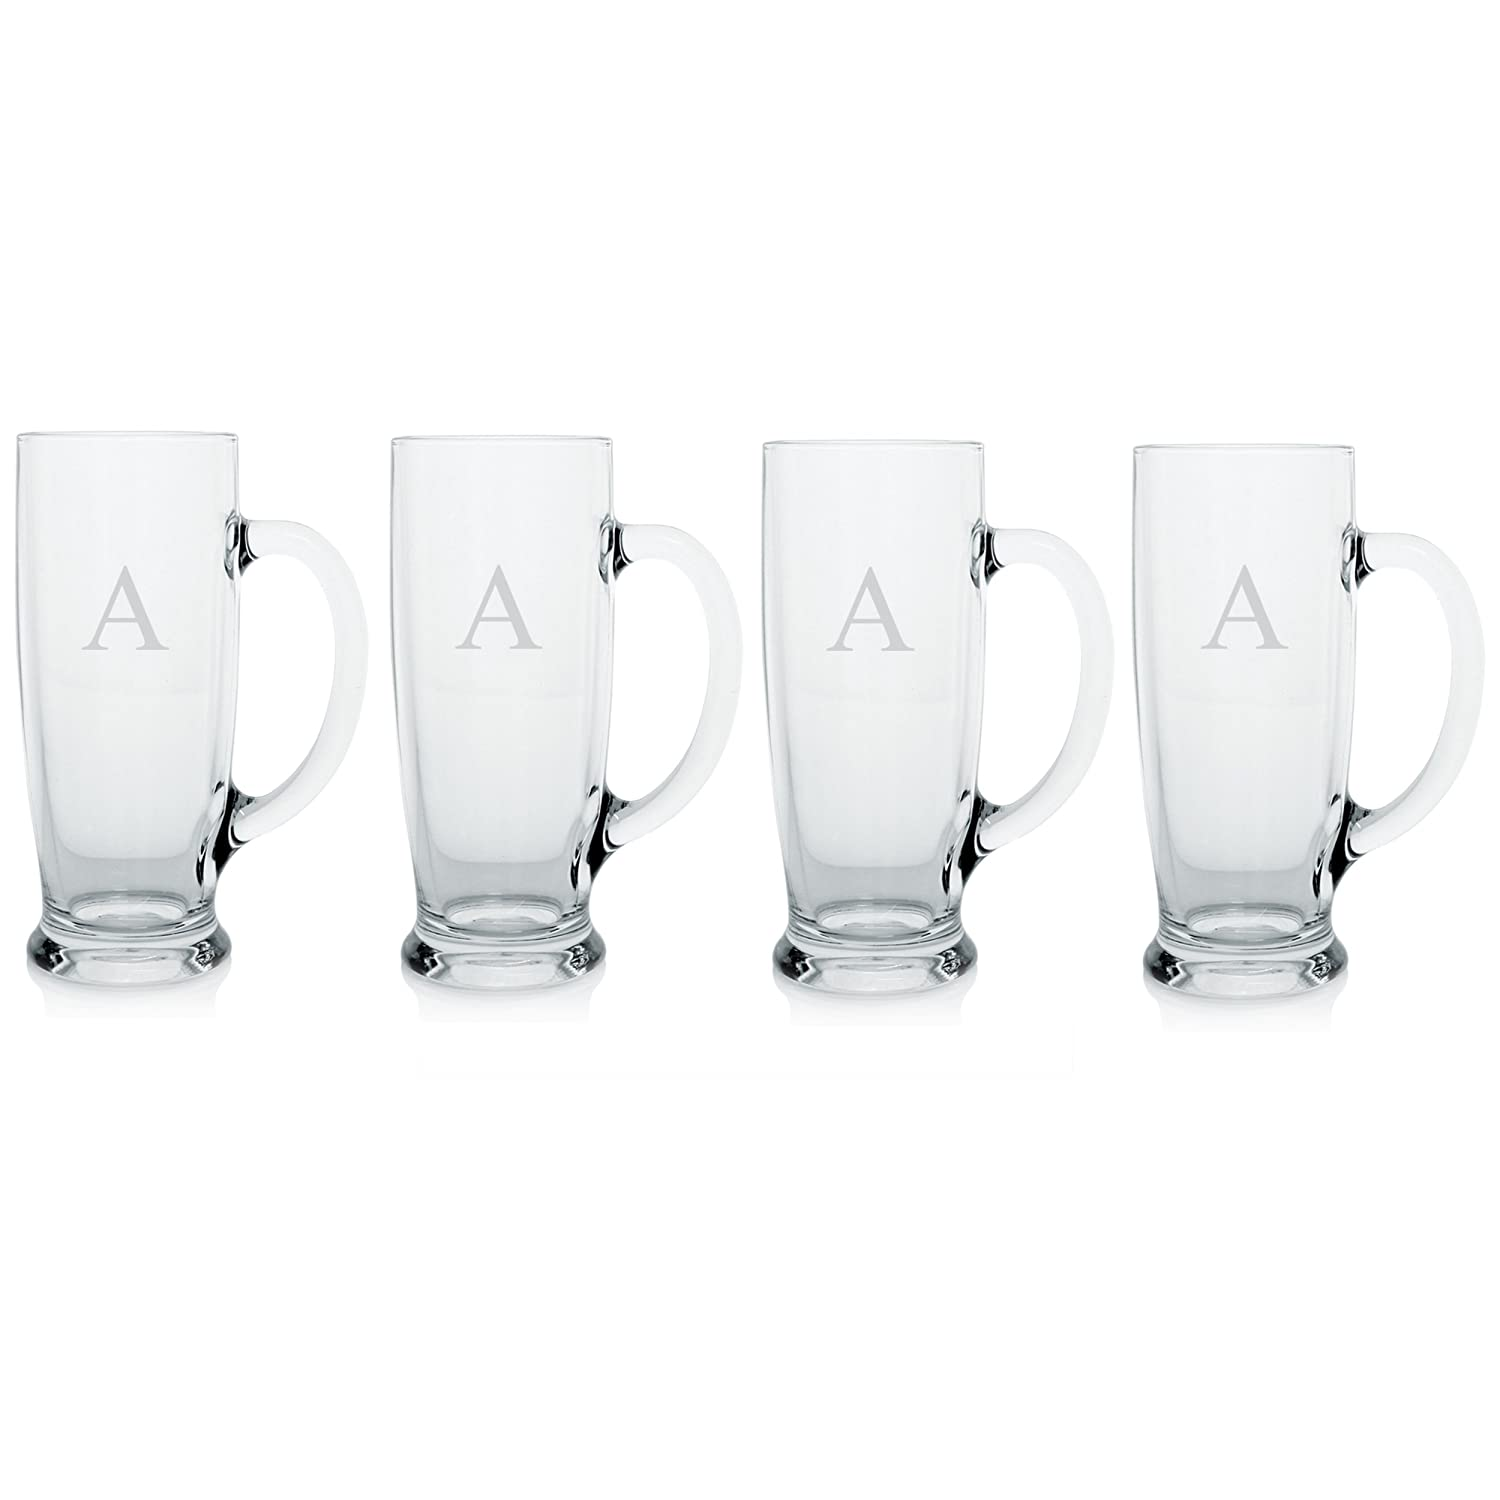 Cathy's Concepts Personalized Craft Beer Mugs, Set of 4, Letter S Cathys Concepts 1282-4S